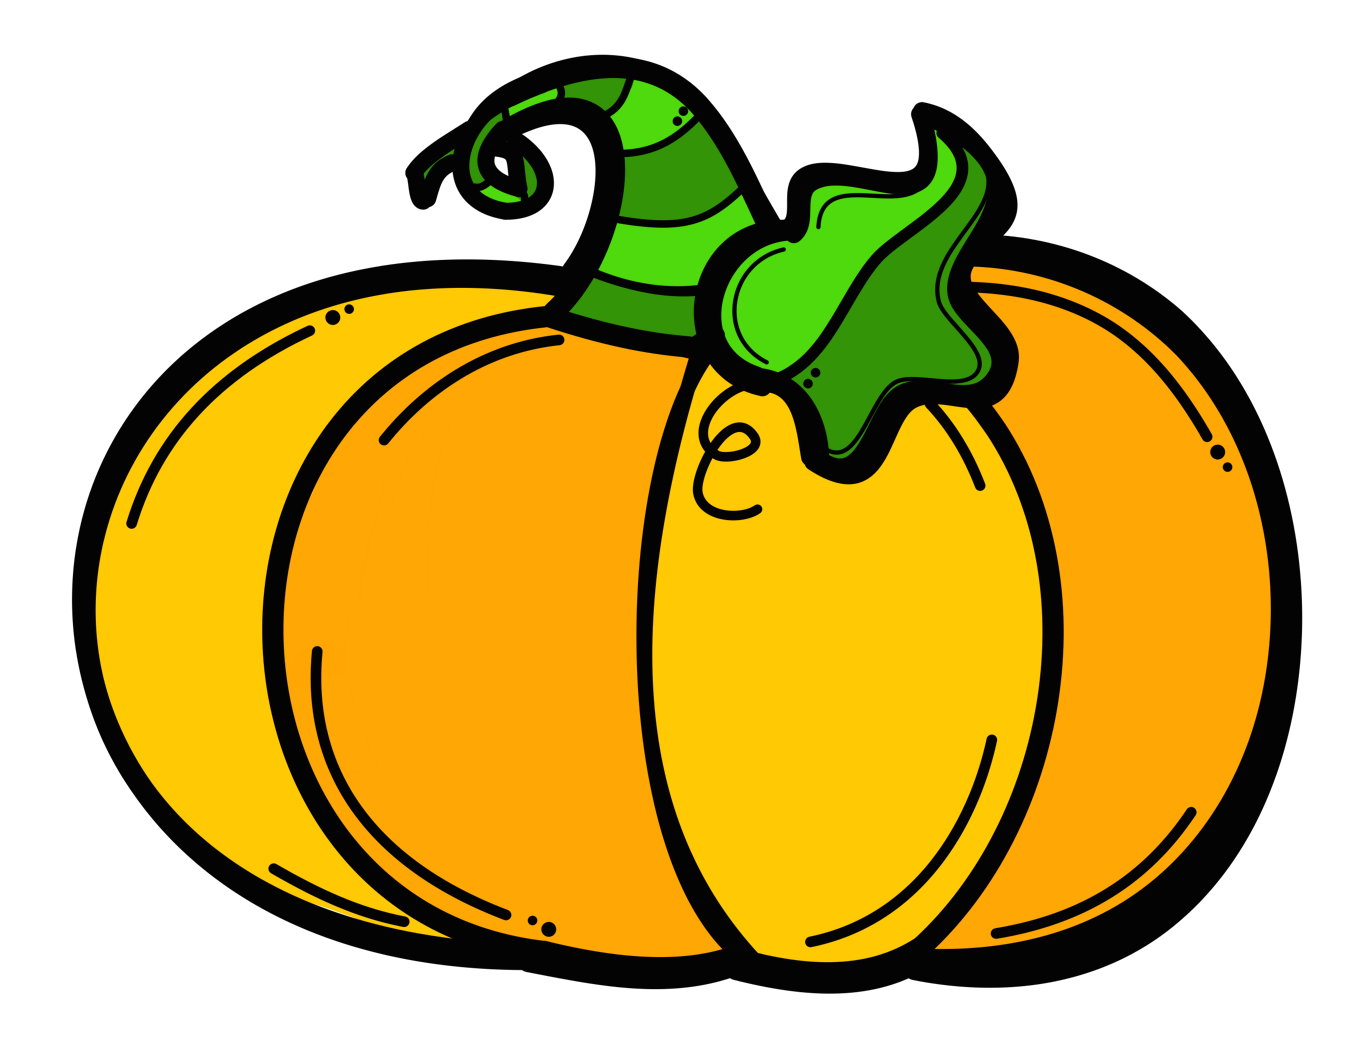 Pumpkin punch board clipart graphic transparent library Pin by Jana Londáková on Farby | Pinterest | File folder games and ... graphic transparent library